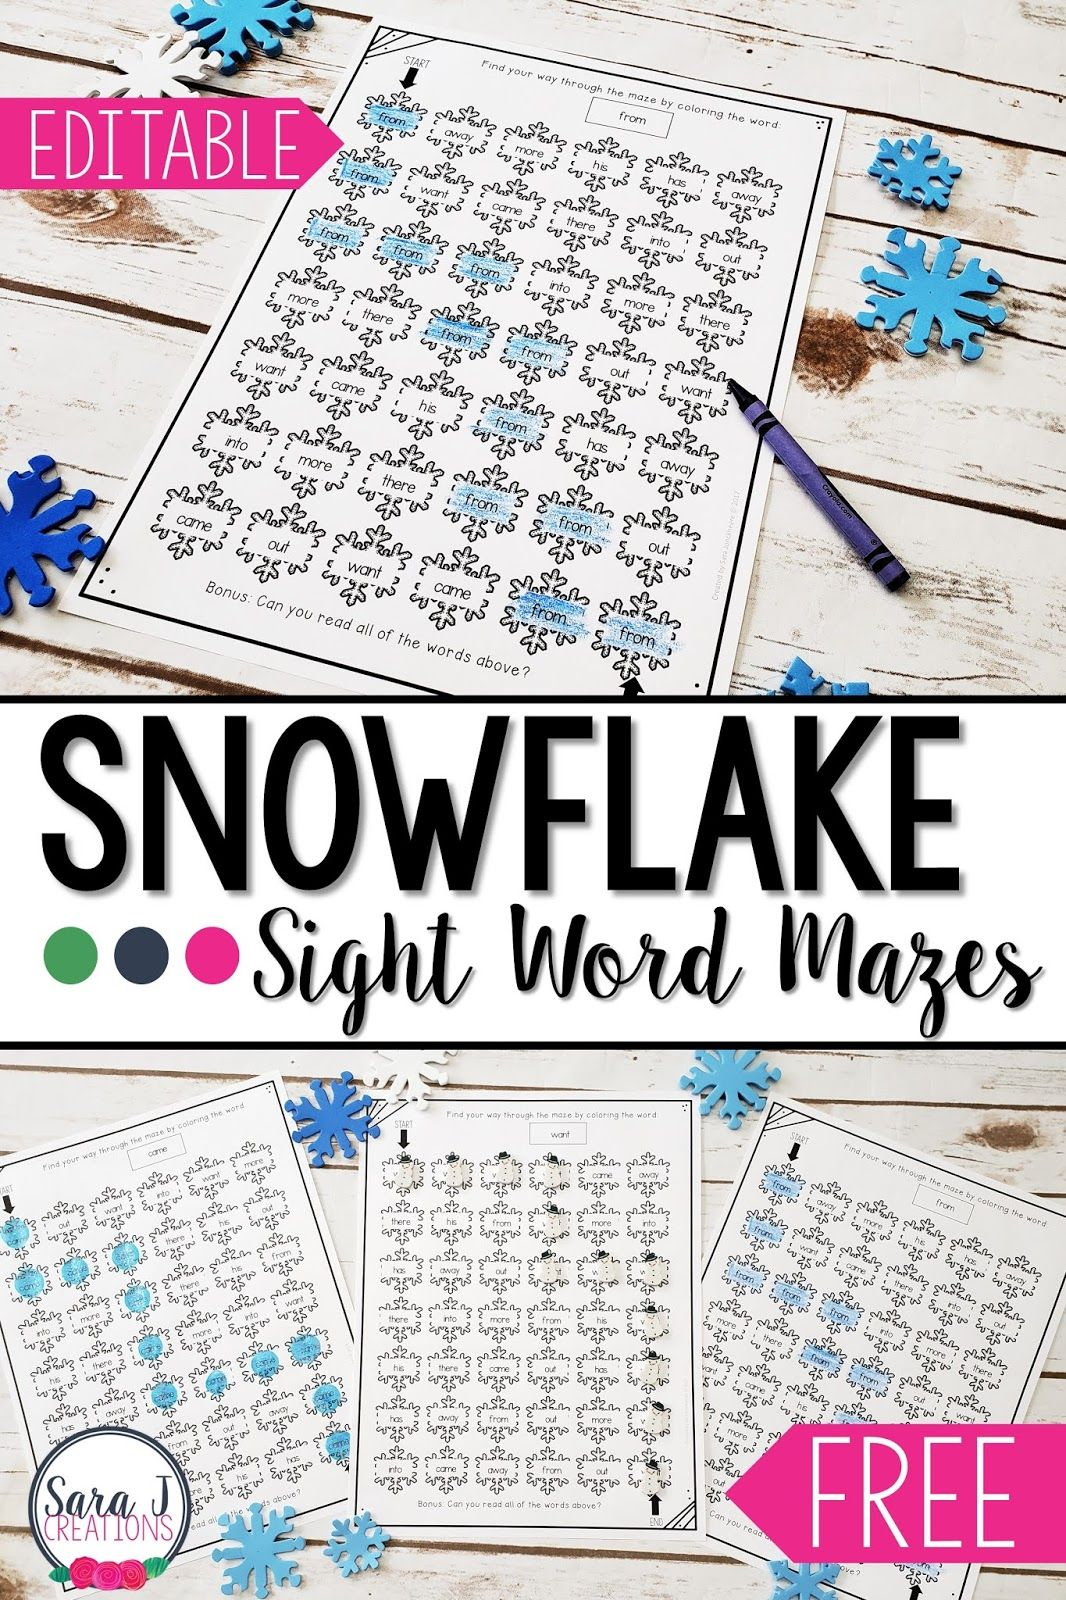 Winter Snowflake Editable Sight Word Mazes